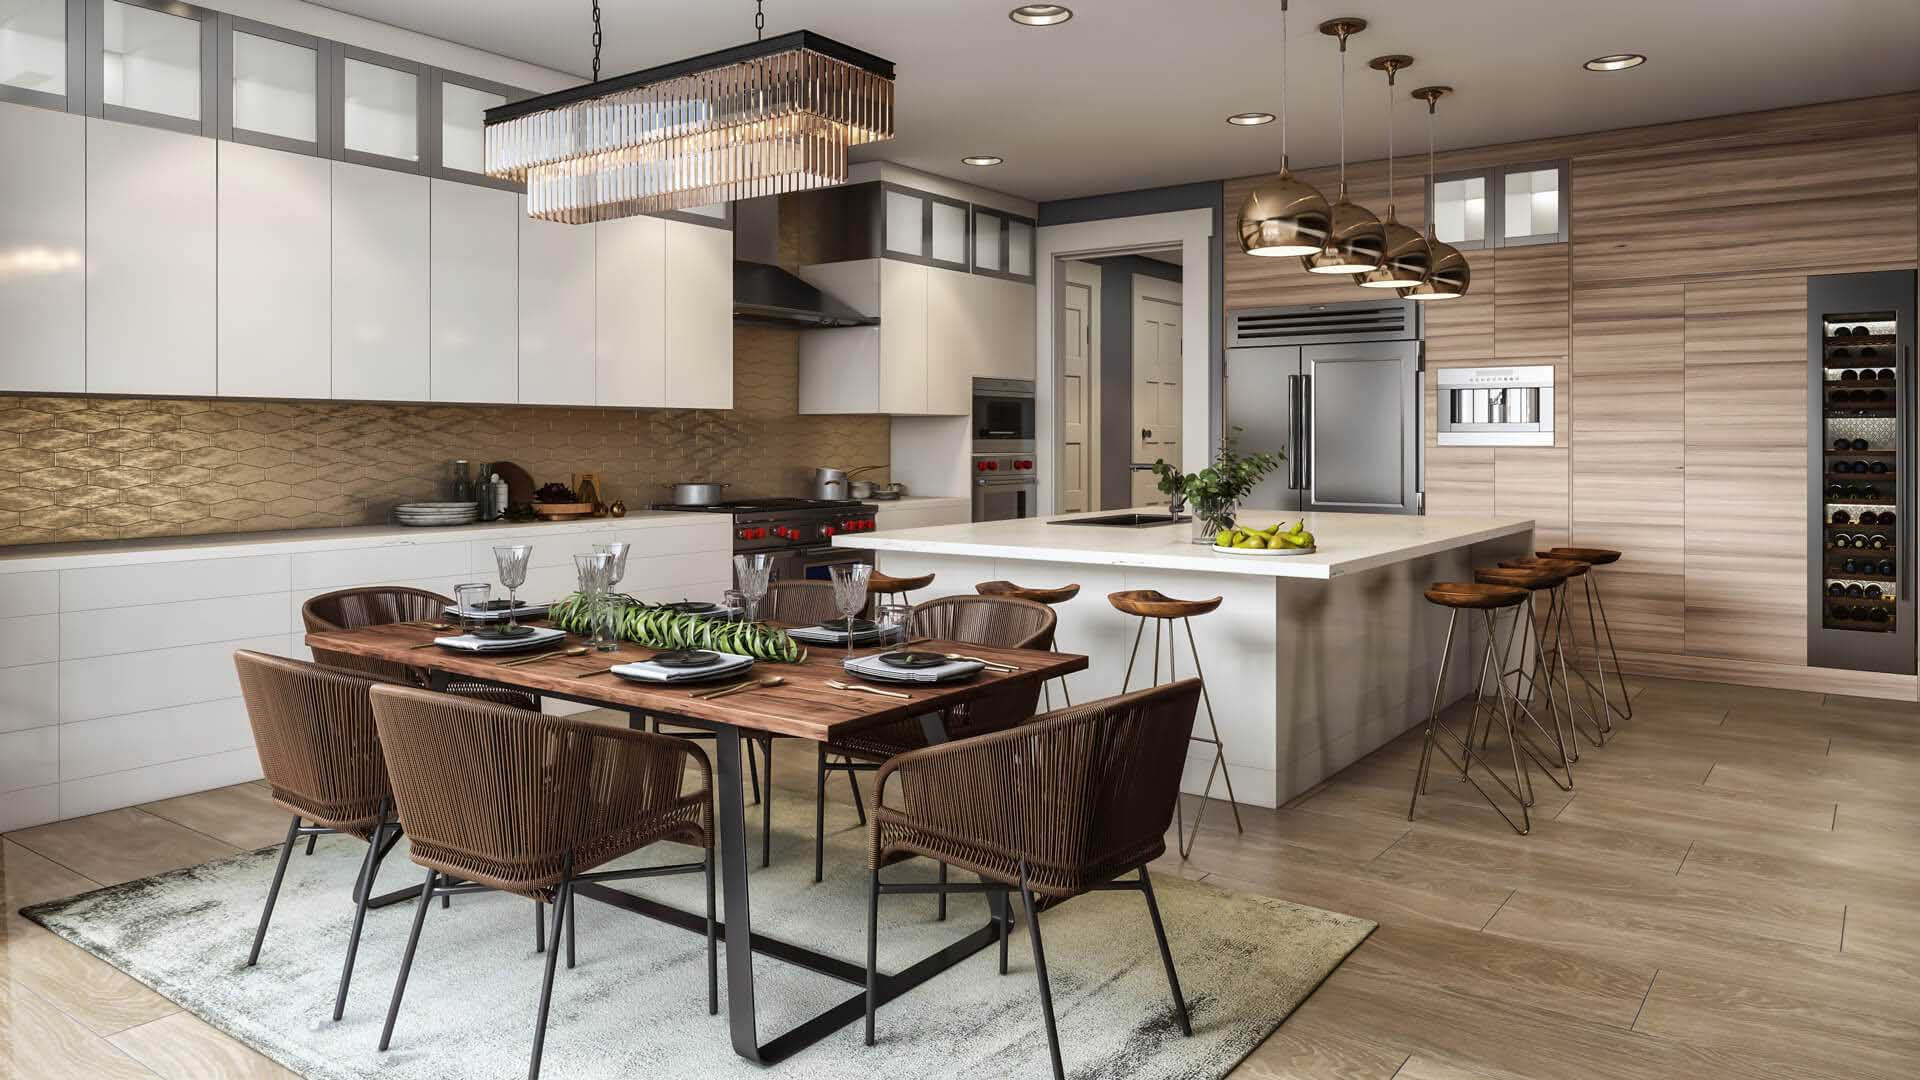 A Virtually Staged Kitchen and Dining Zone